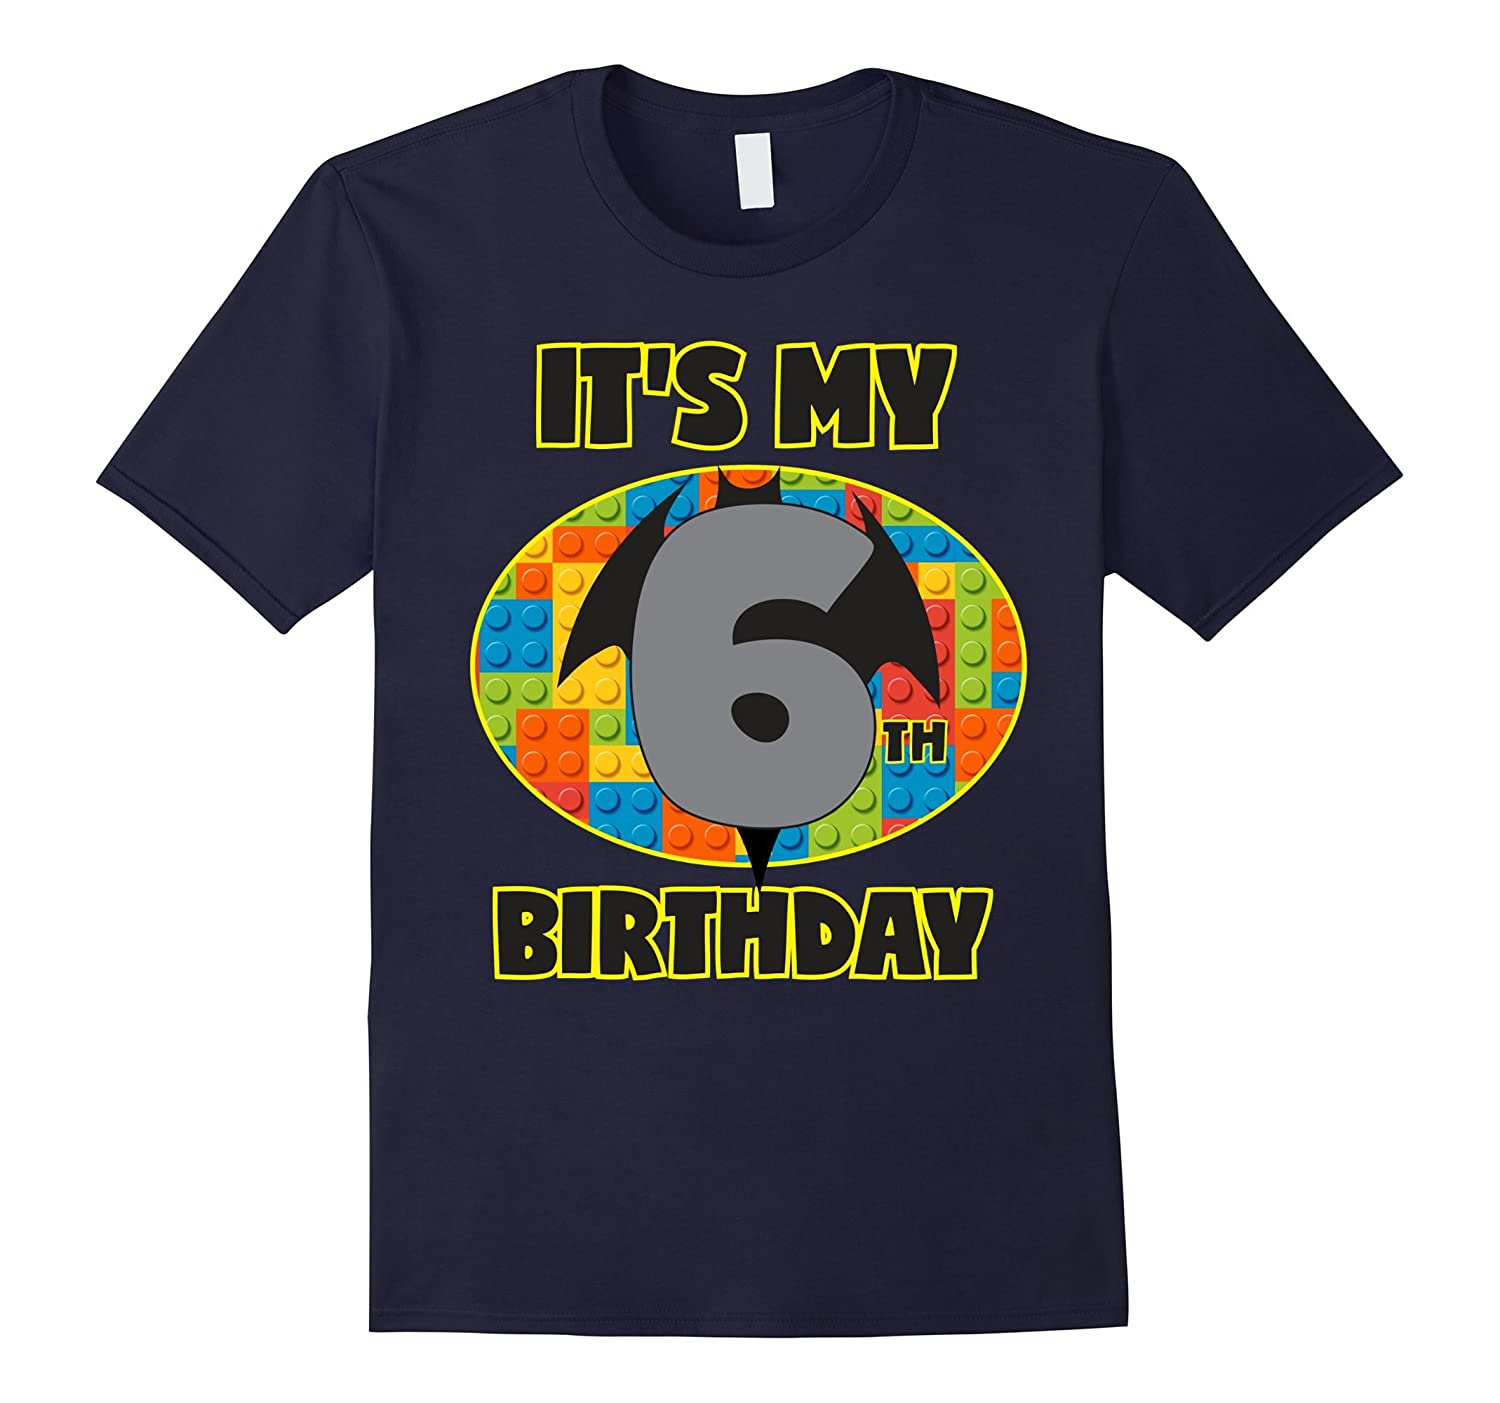 Birthday Shirt For Boys Age 6 Blocks Bricks Theme Girls-TD